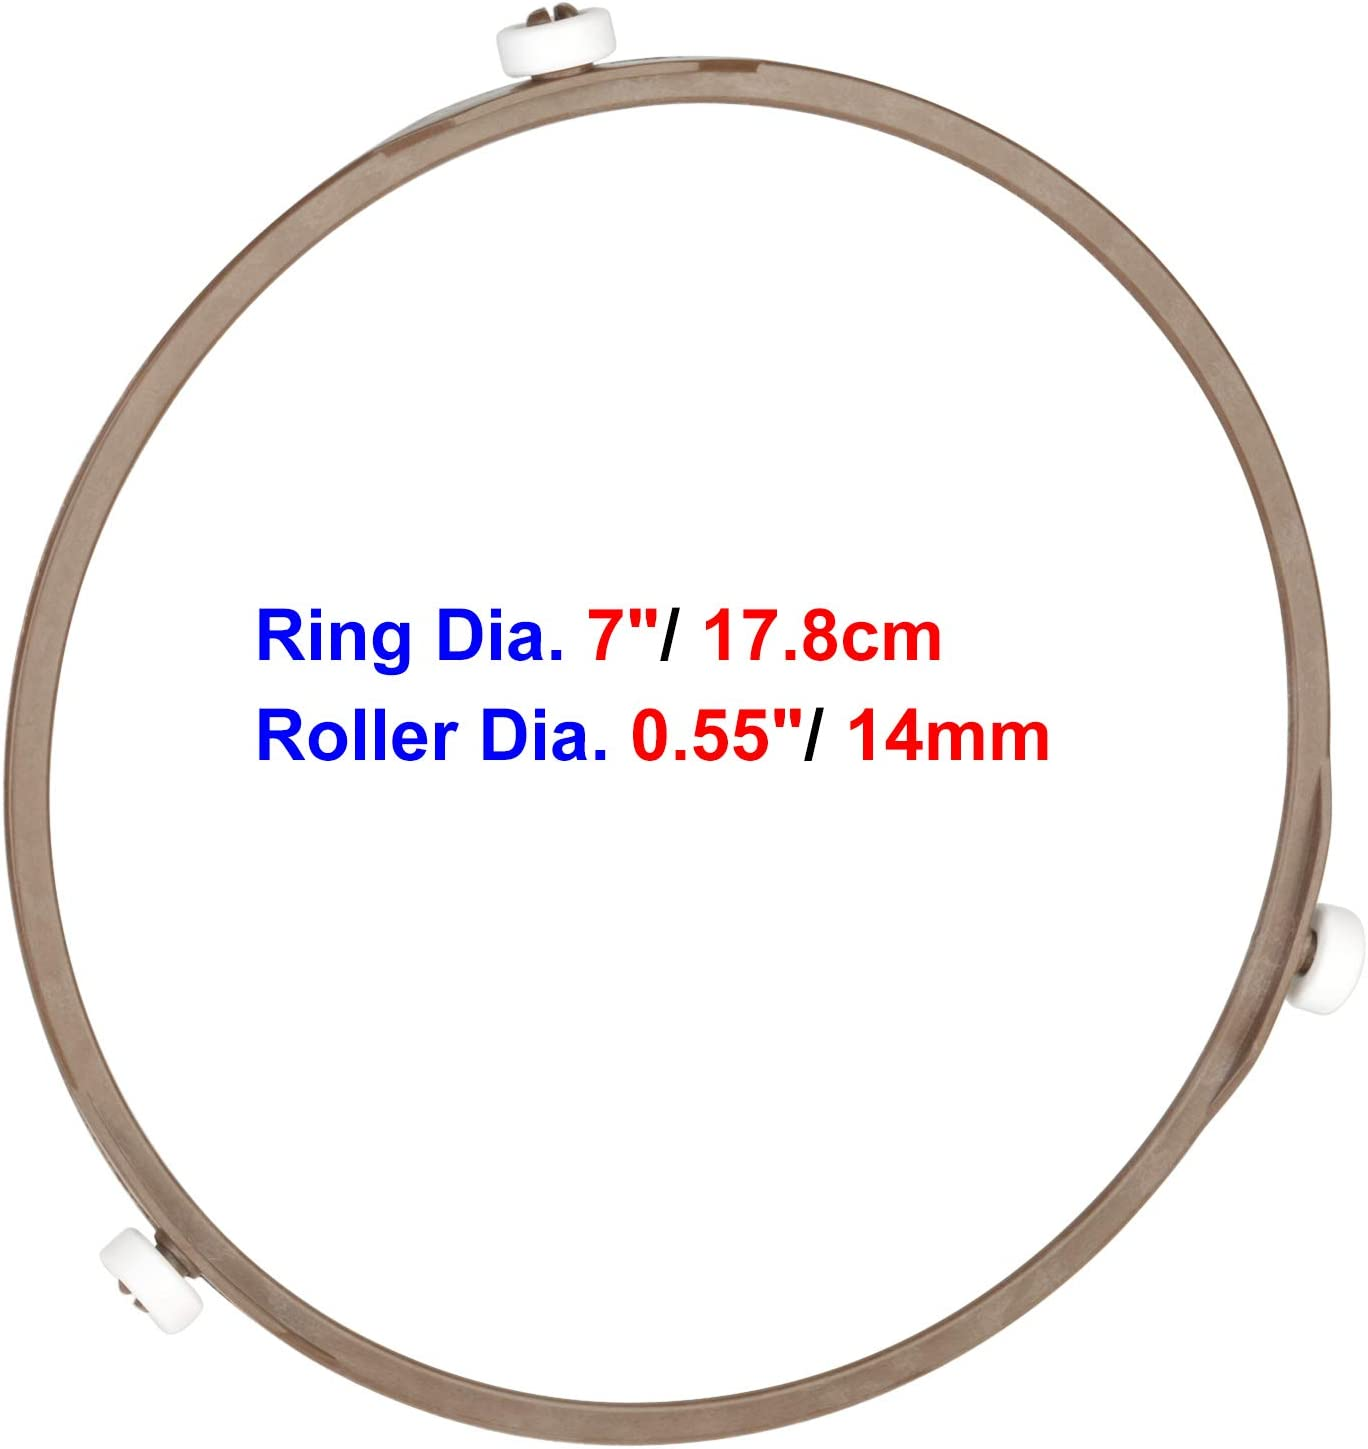 Rotating Roller Ring for 9.6 and 10.6 Plate UniTry 7 Microwave Turntable Support Ring Dia. 7 inch// 17.8cm, Roller Dia. 12mm Microwave Oven Tray Support